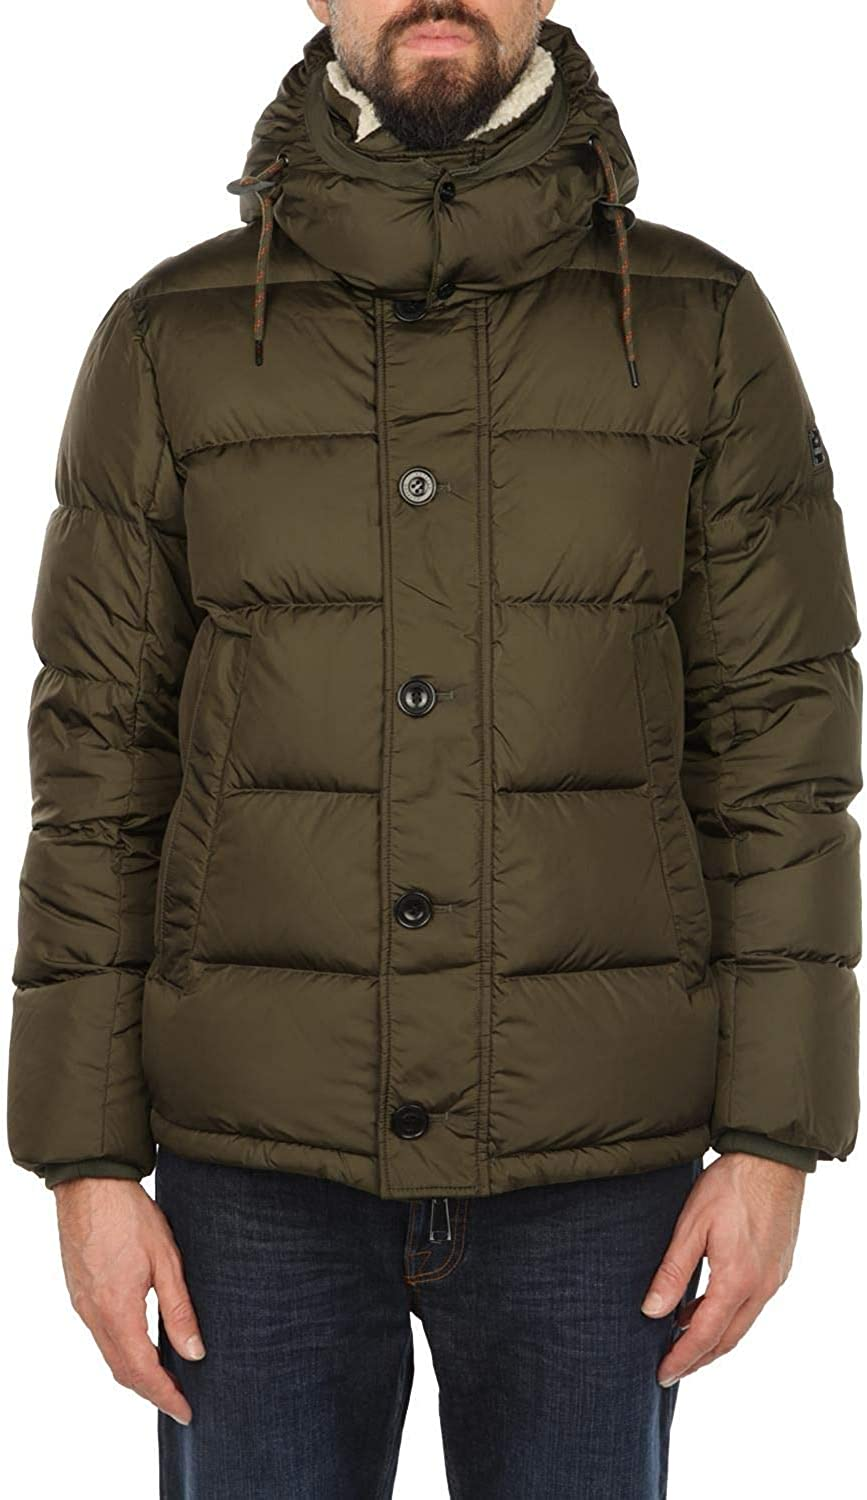 HETREGó Men's 8G483THERNANKMB Green Polyester Down Jacket